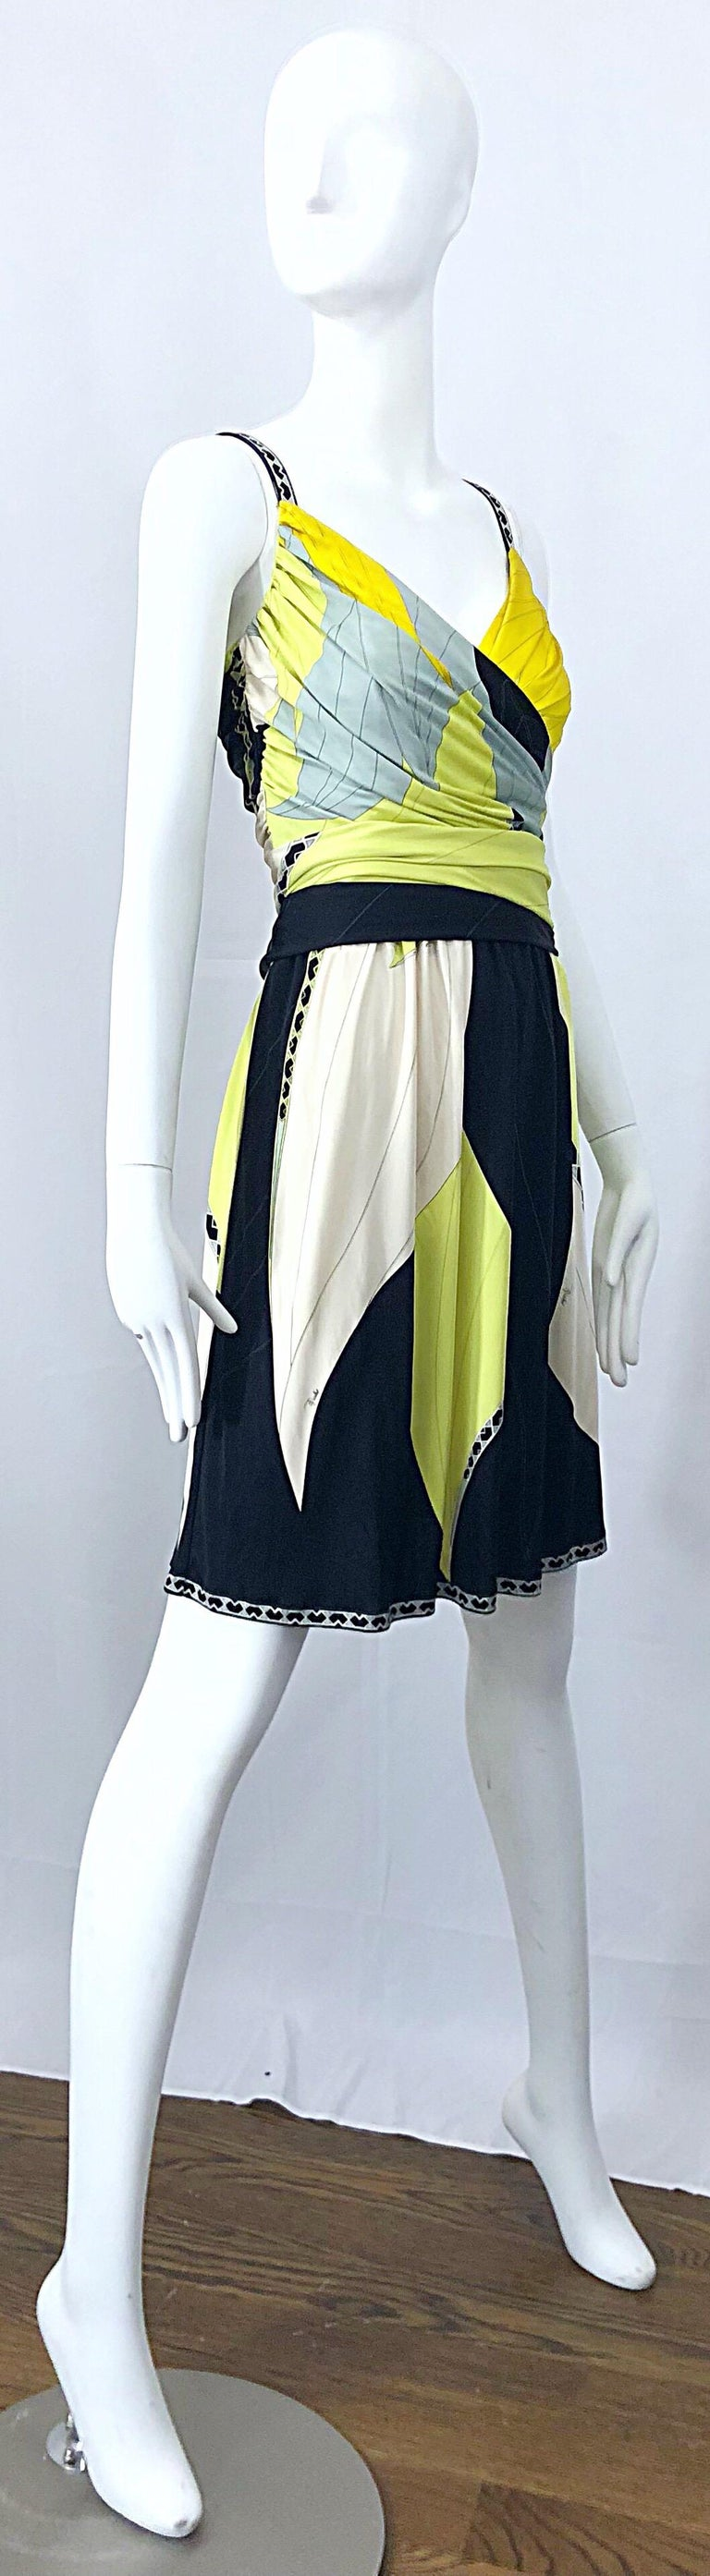 Emilio Pucci 1990s Size 8 Chartreuse Black Ivory Kaleidoscope Silk Jersey Dress For Sale 3